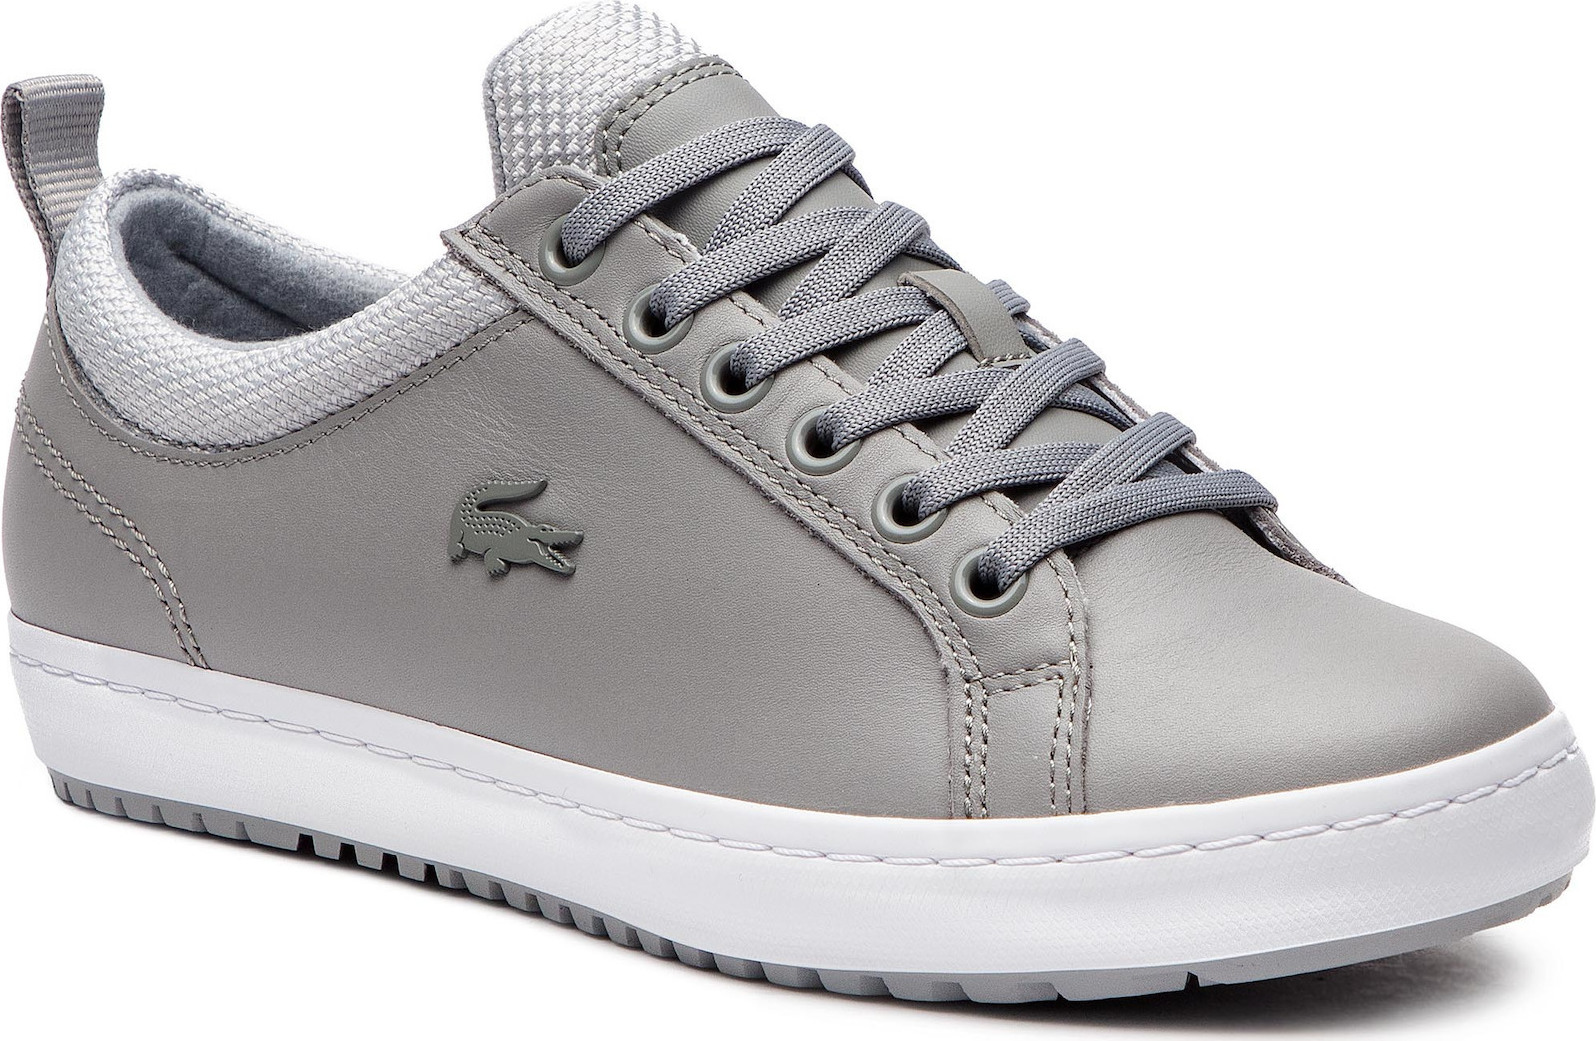 Lacoste Straightset Insulate 3182 Caw 7-36CAW0043H92 - Skroutz.gr 1f88a0e9806